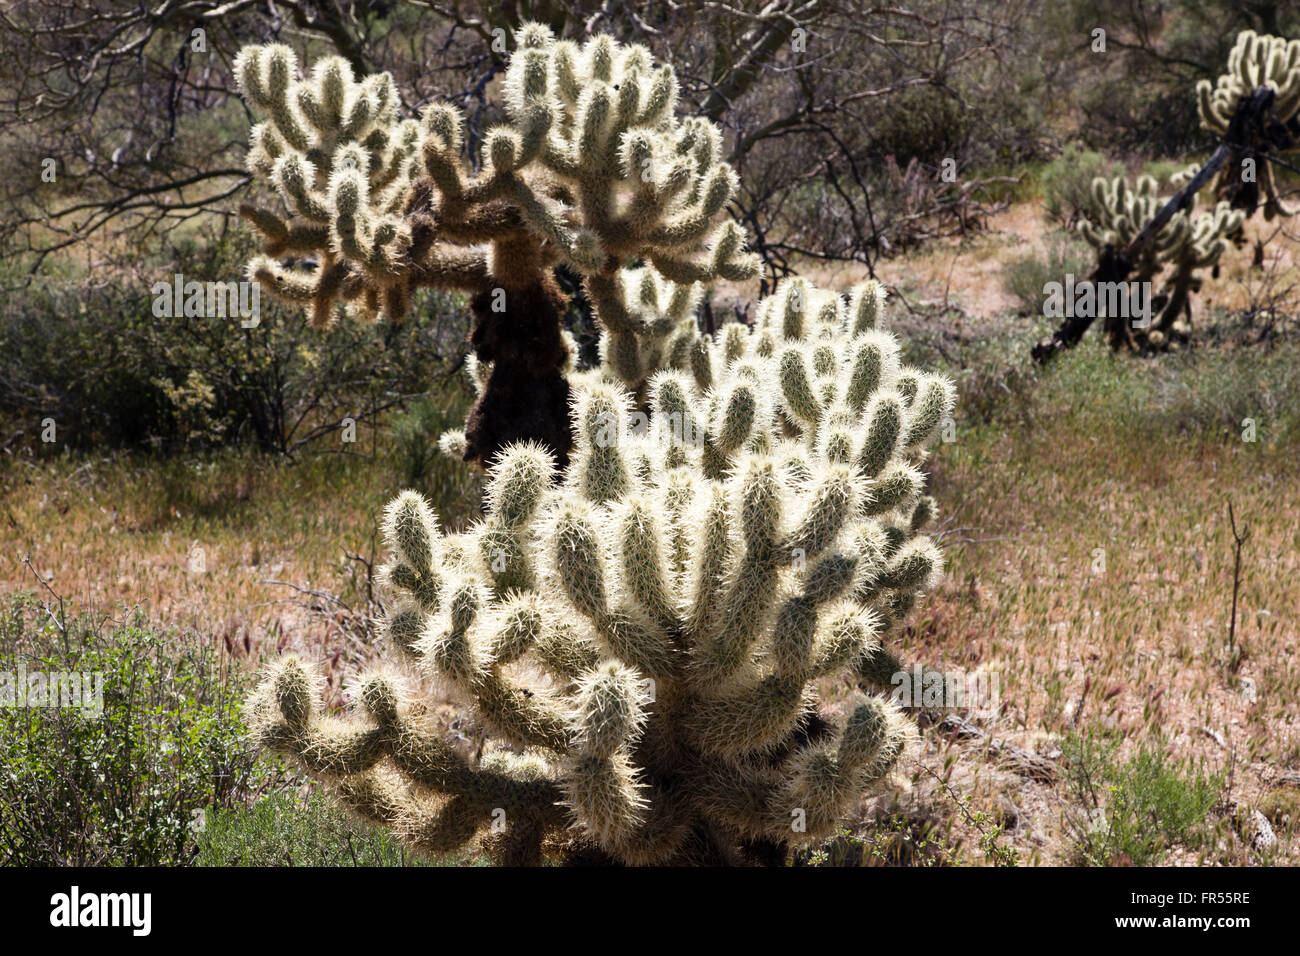 Thorny Cholla Cactus in the southwestern desert USA - Stock Image